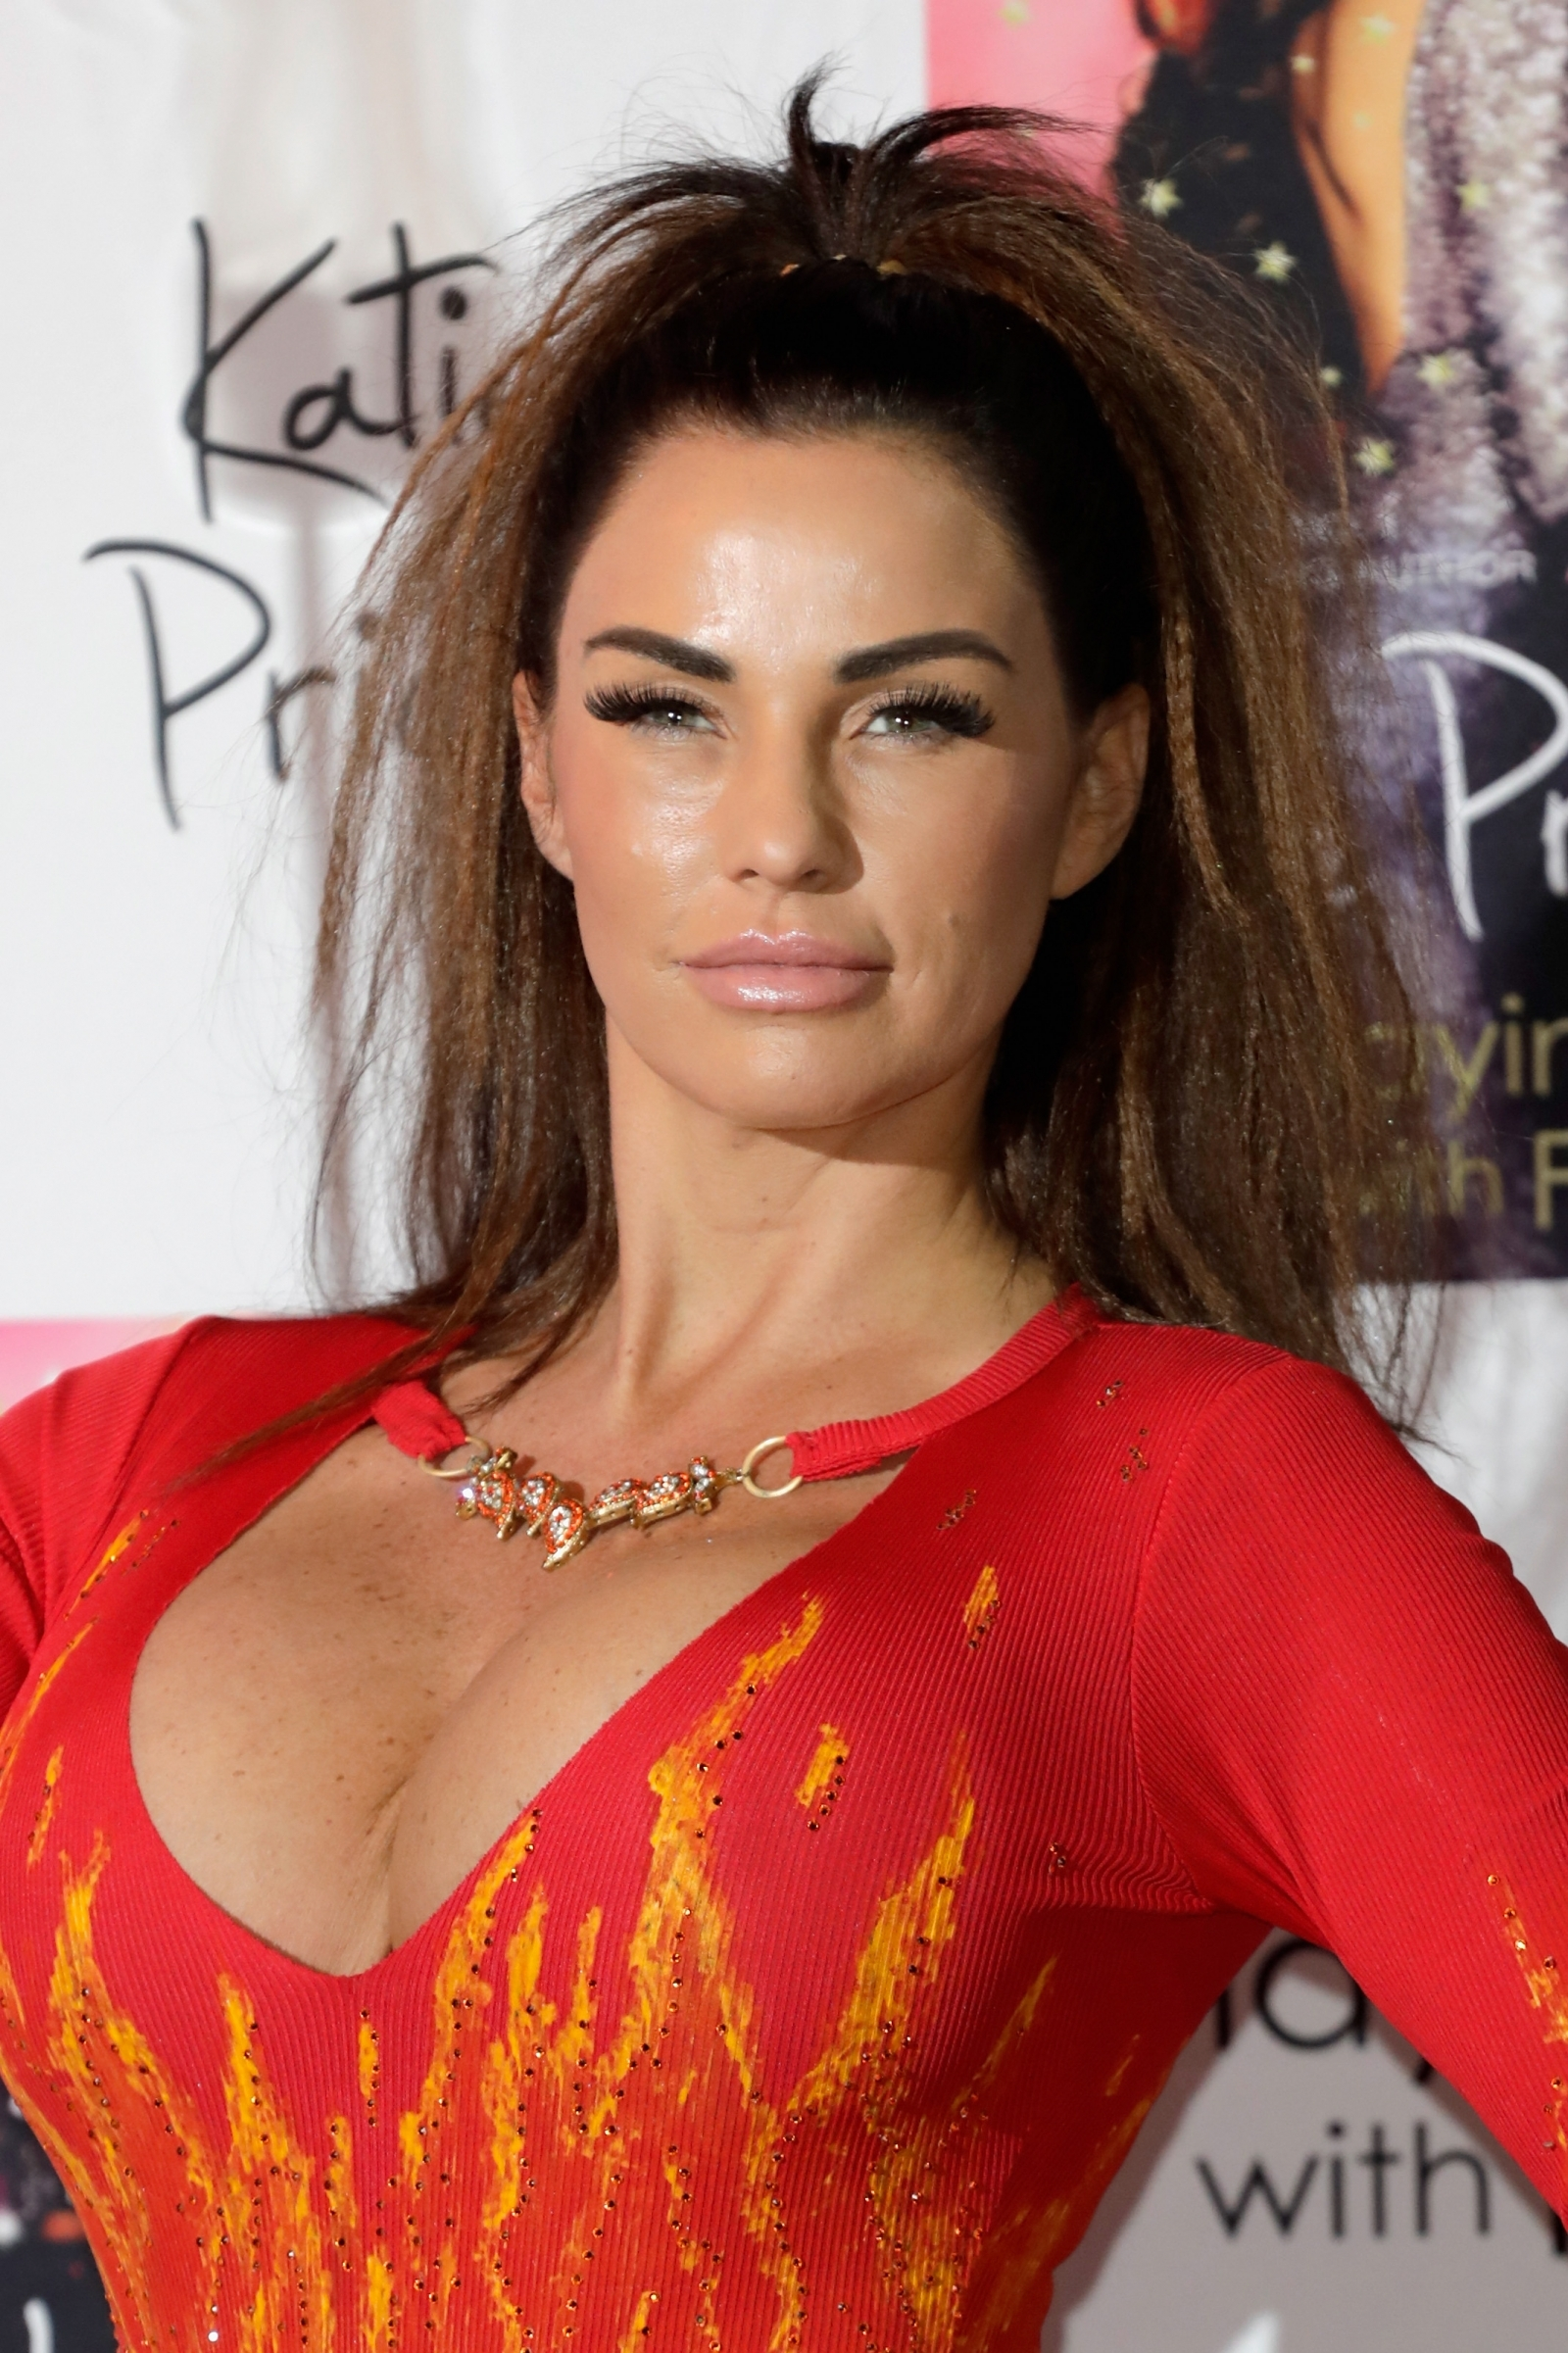 picture 39. Katie Price